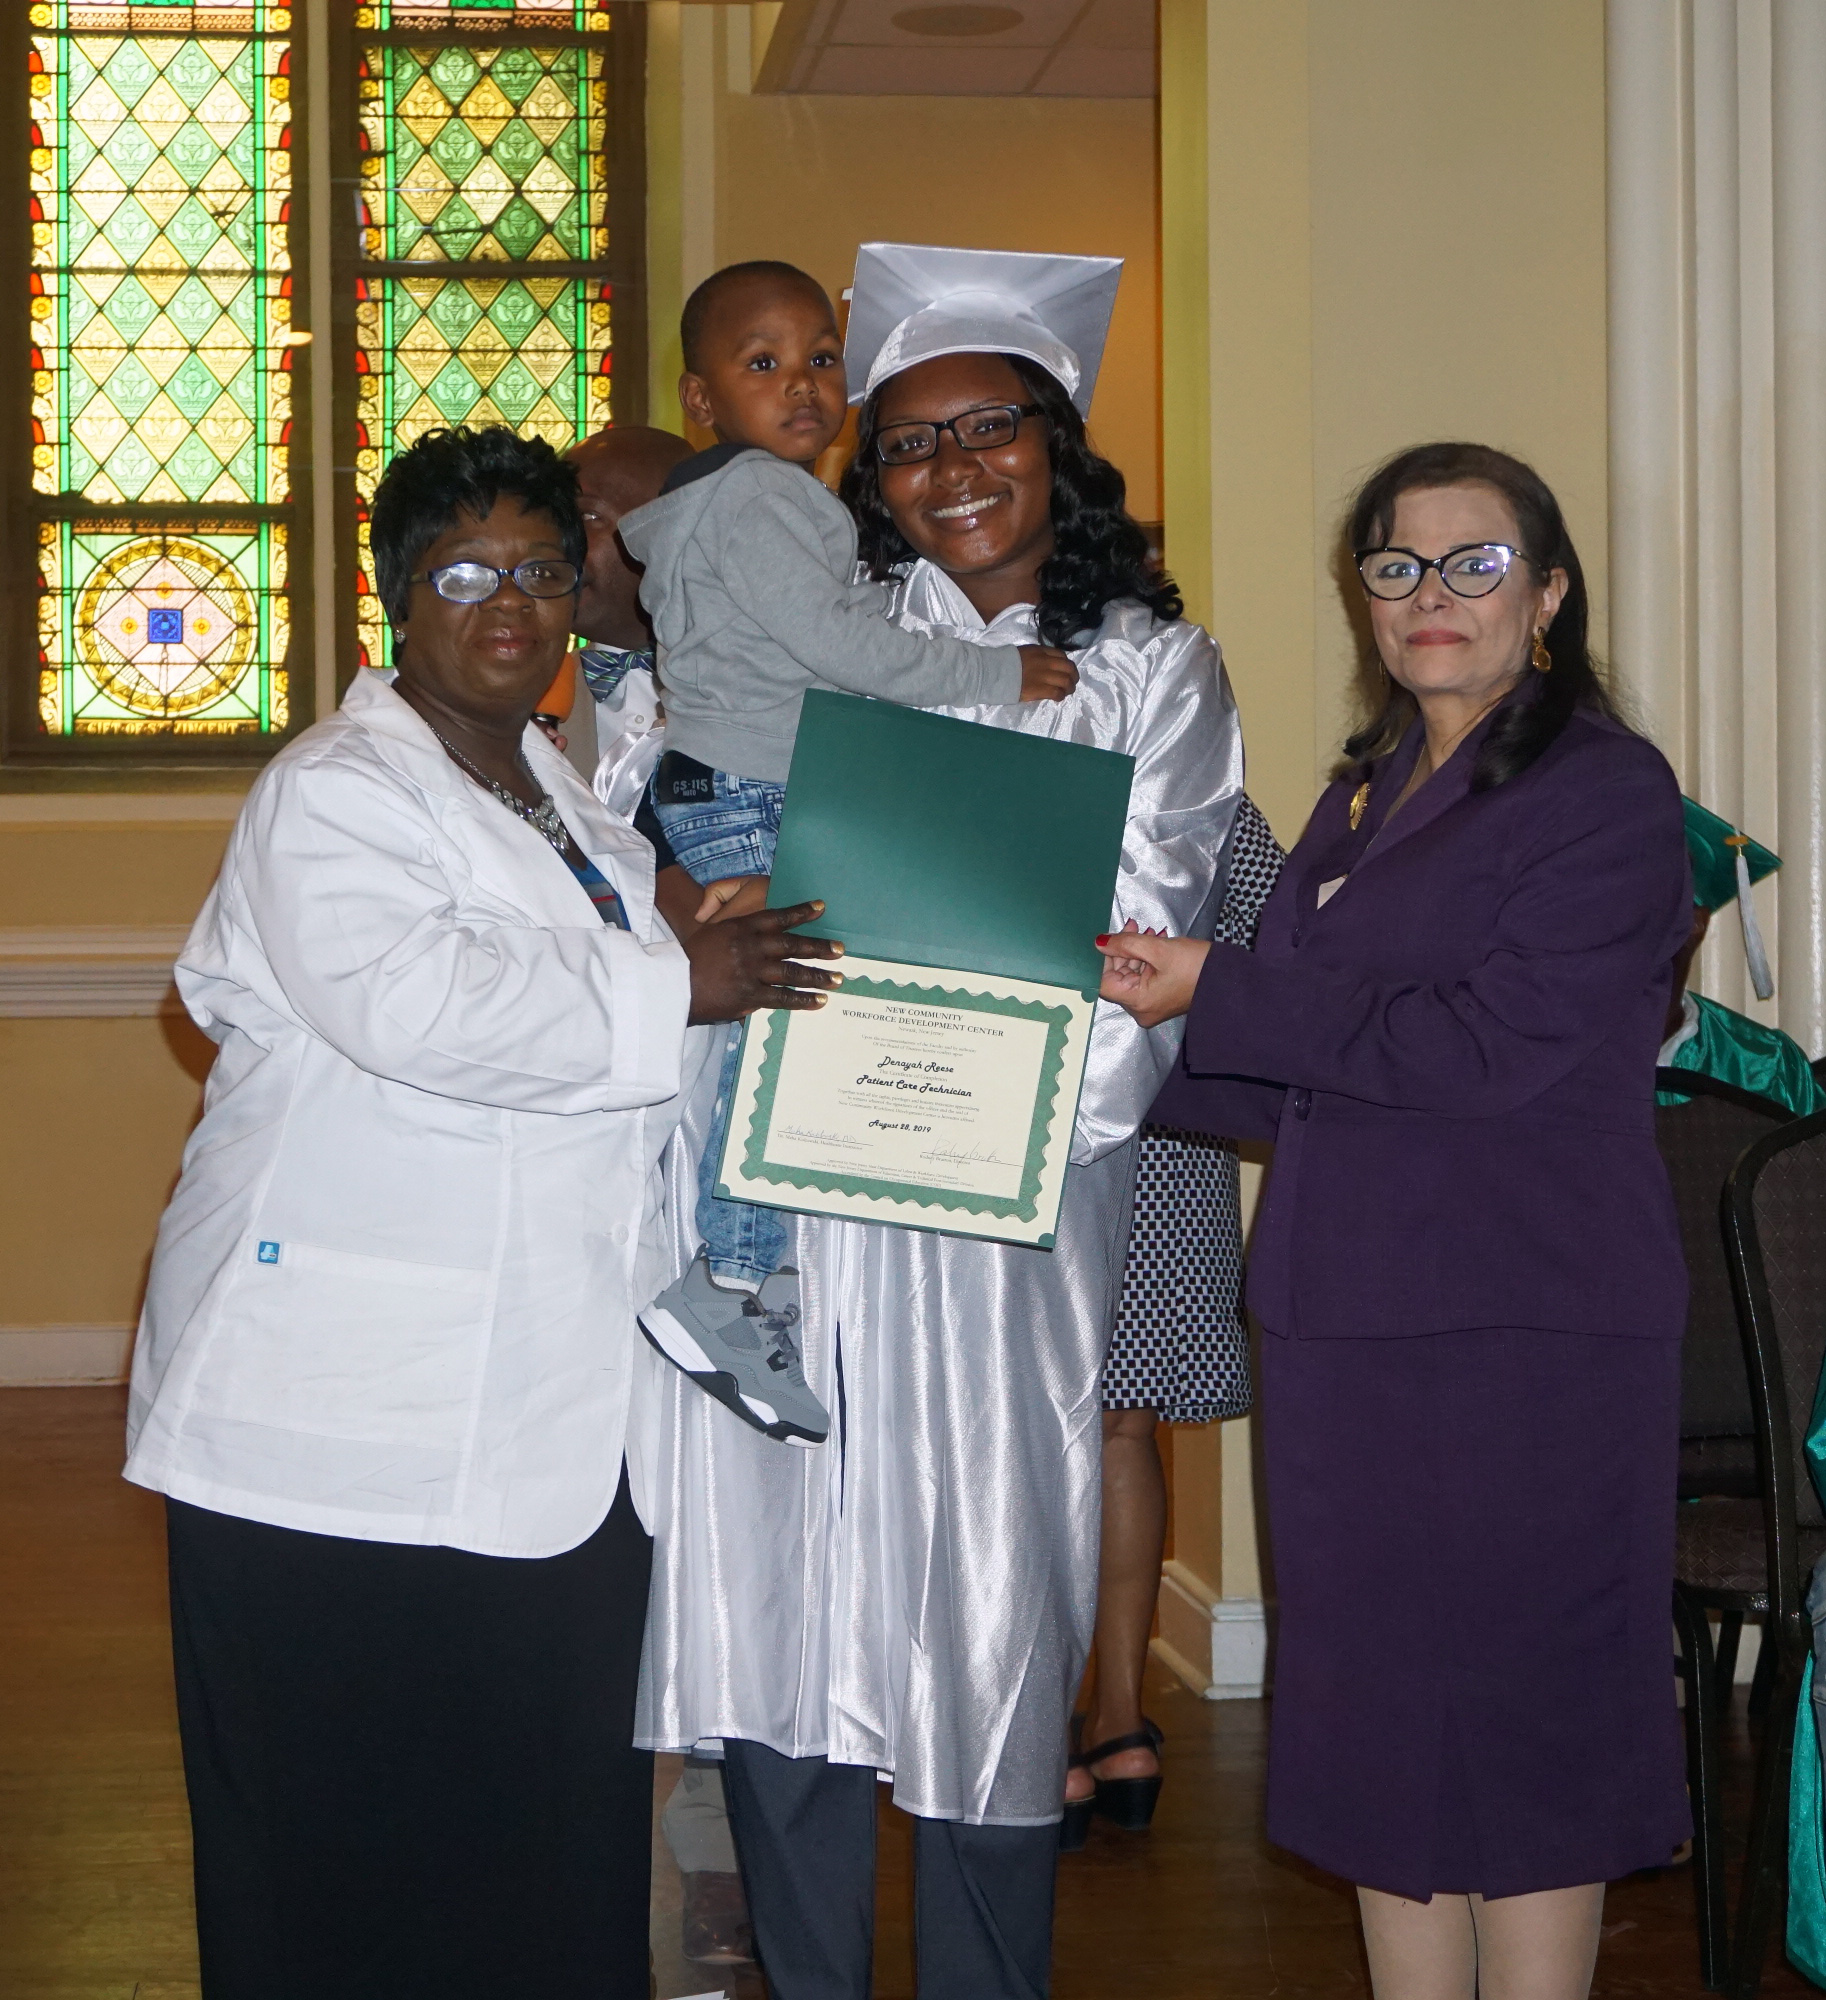 Denayah Reese receiving her certificate.